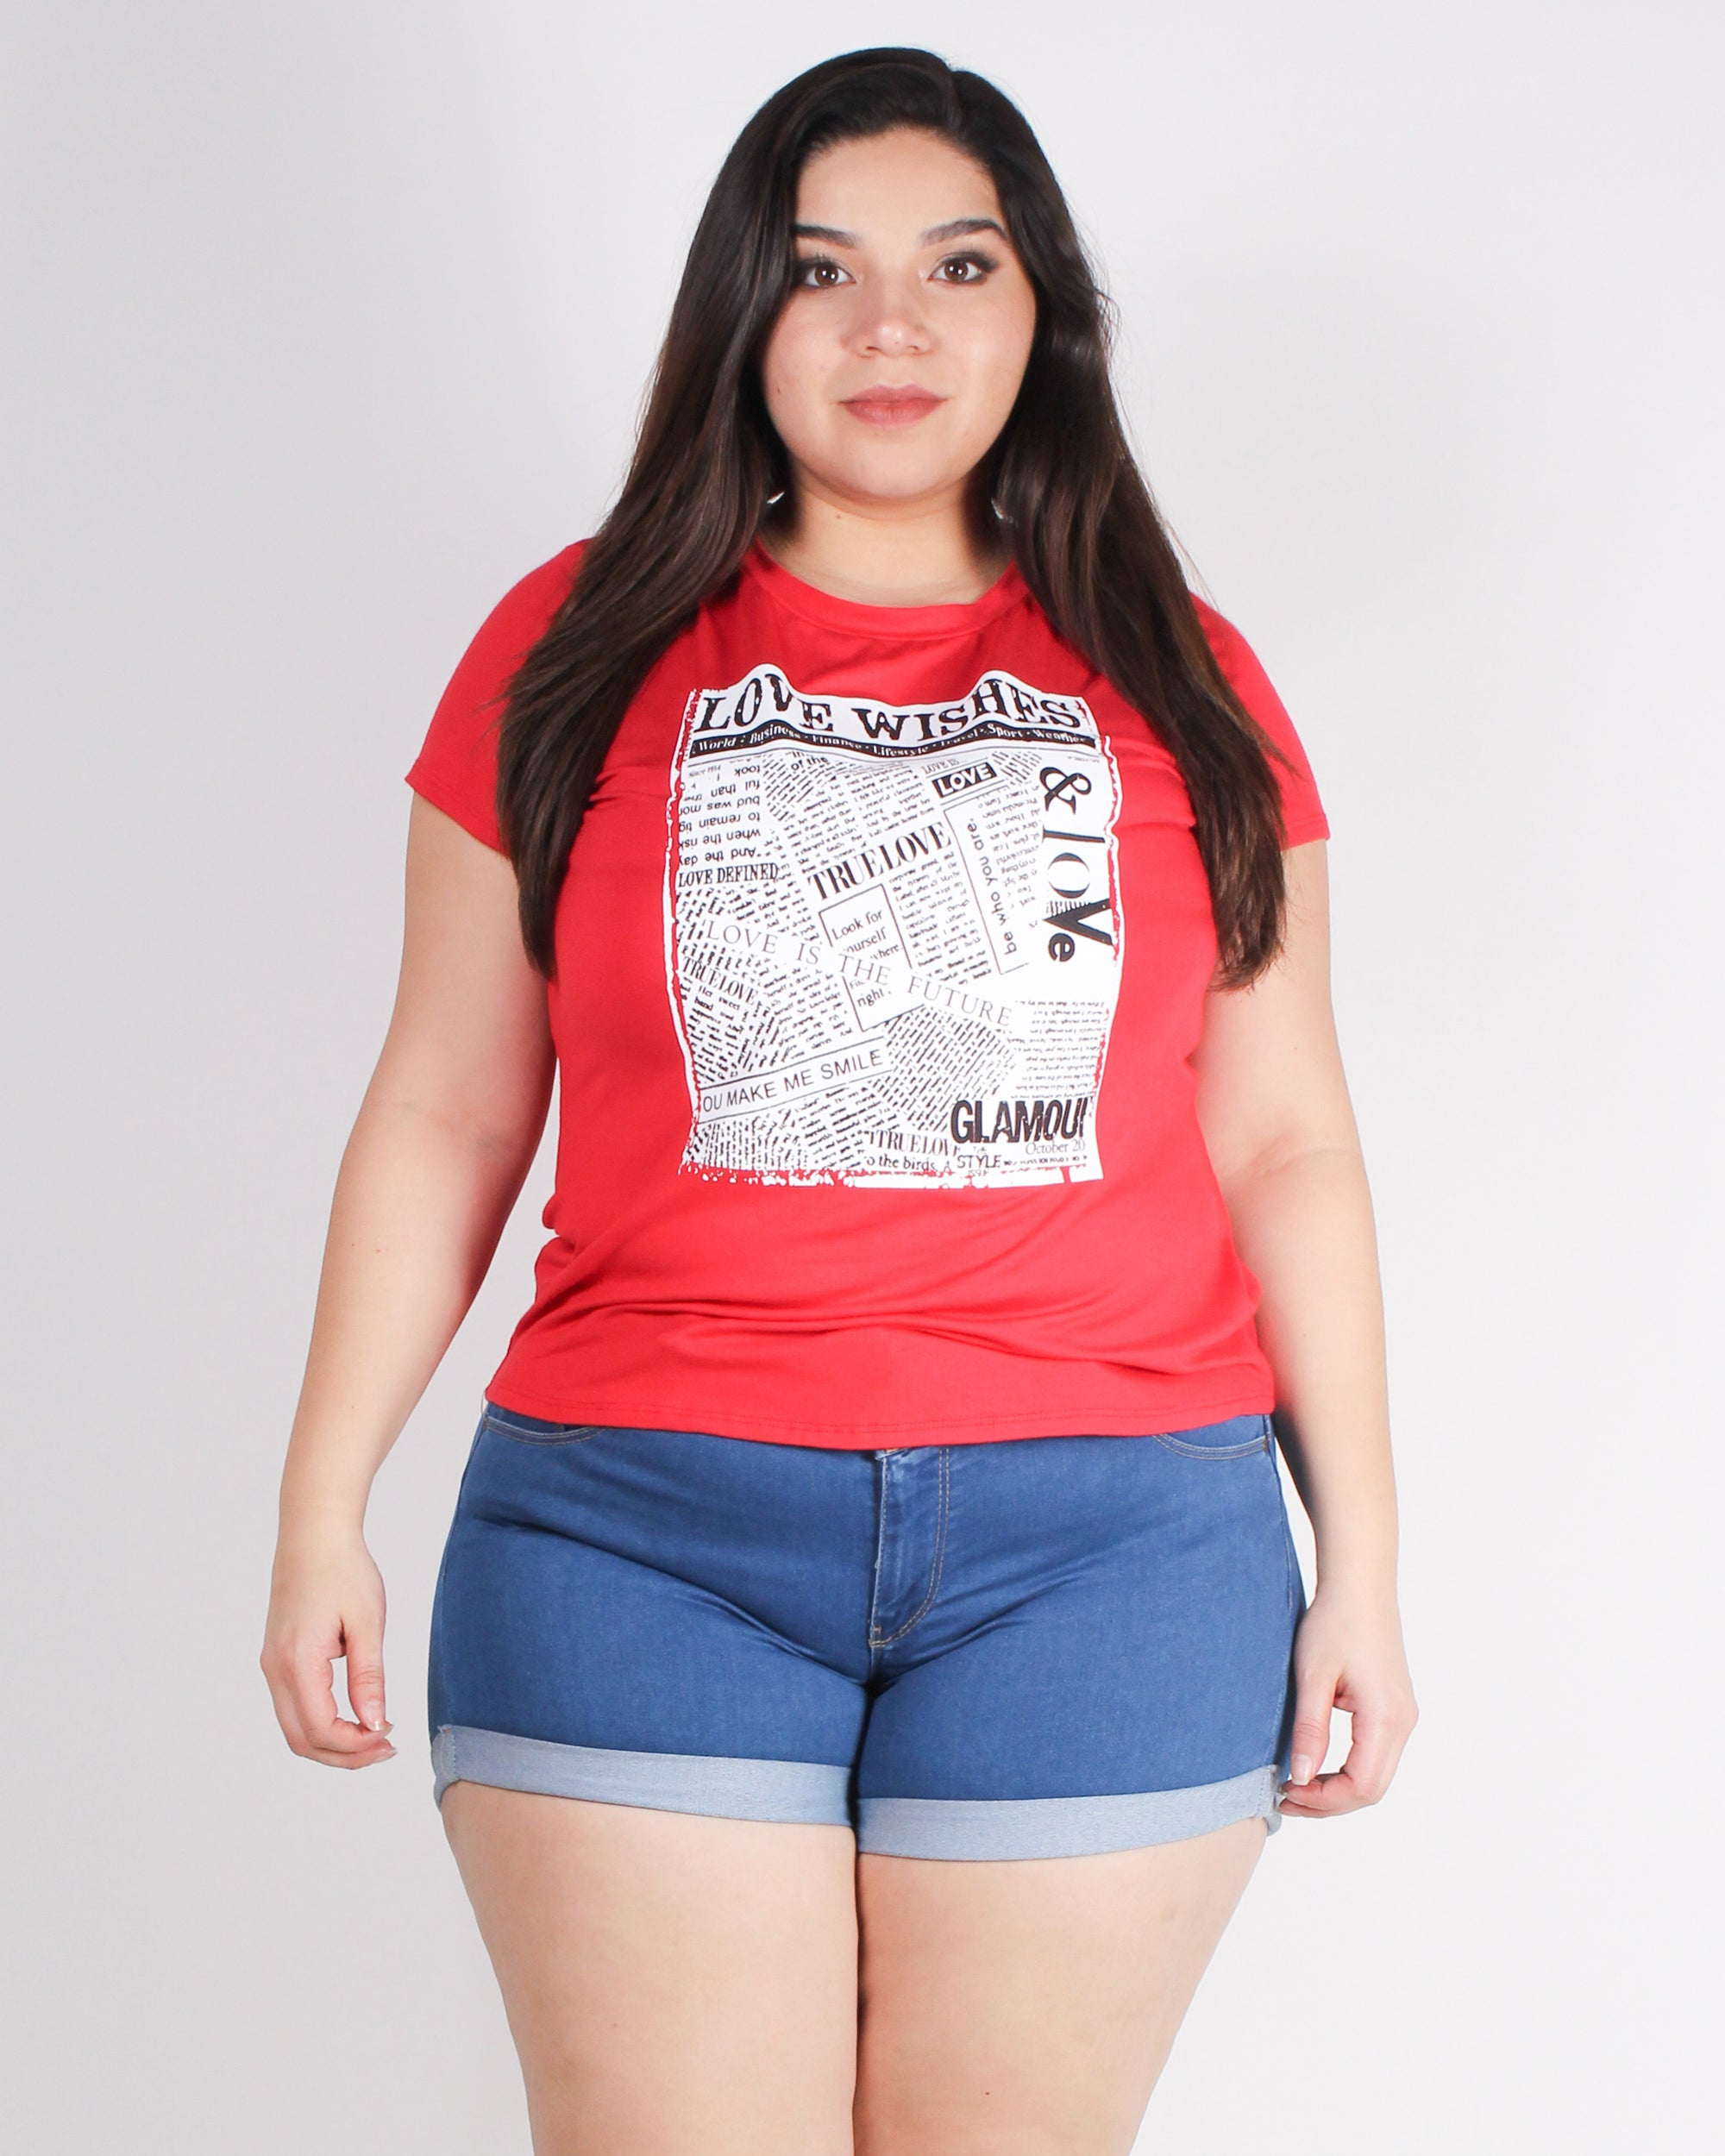 Not So Secret Love Wishes Plus Graphic Top (Red)